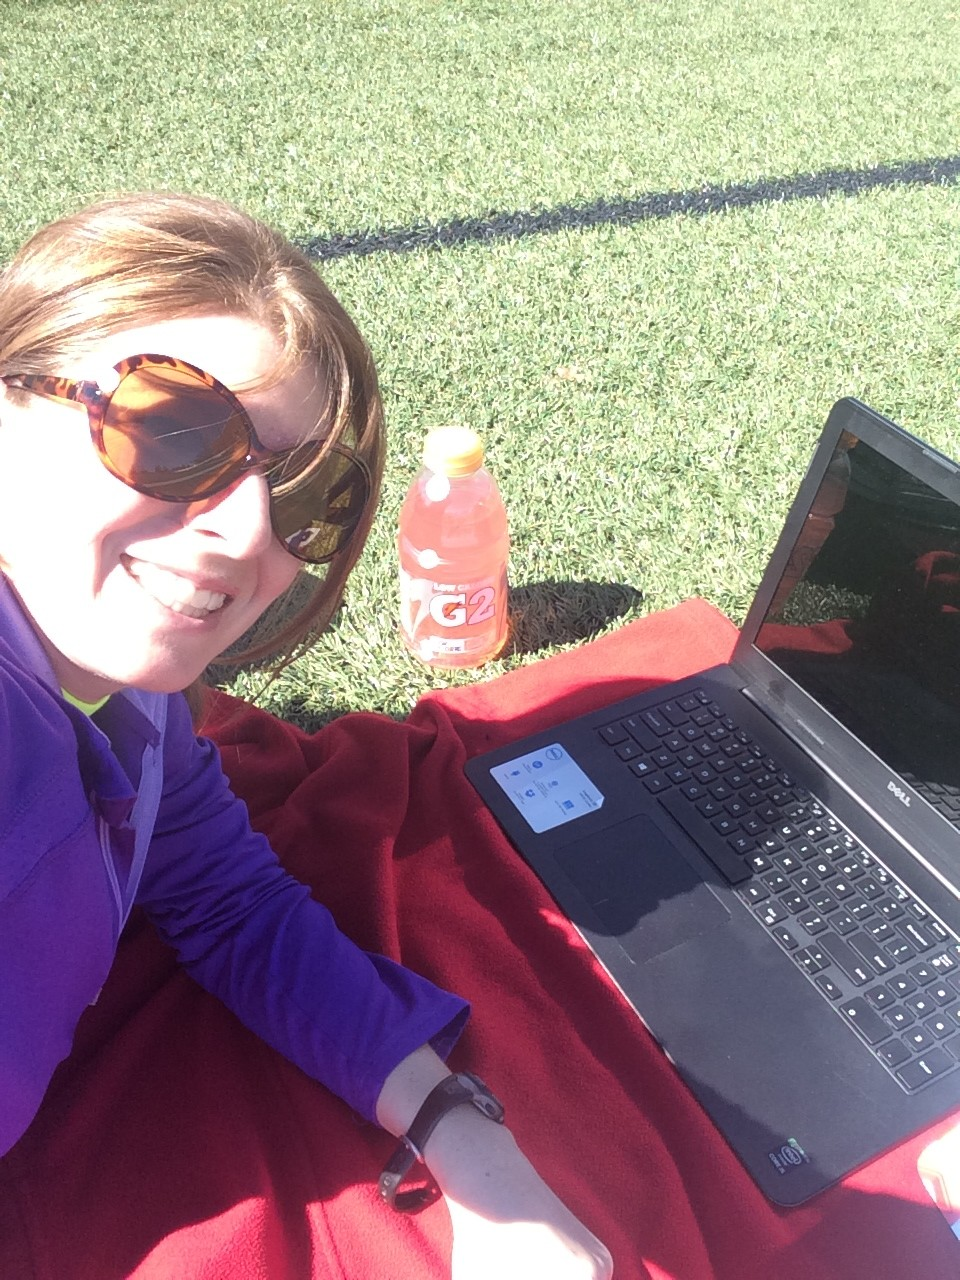 Working in the sunshine